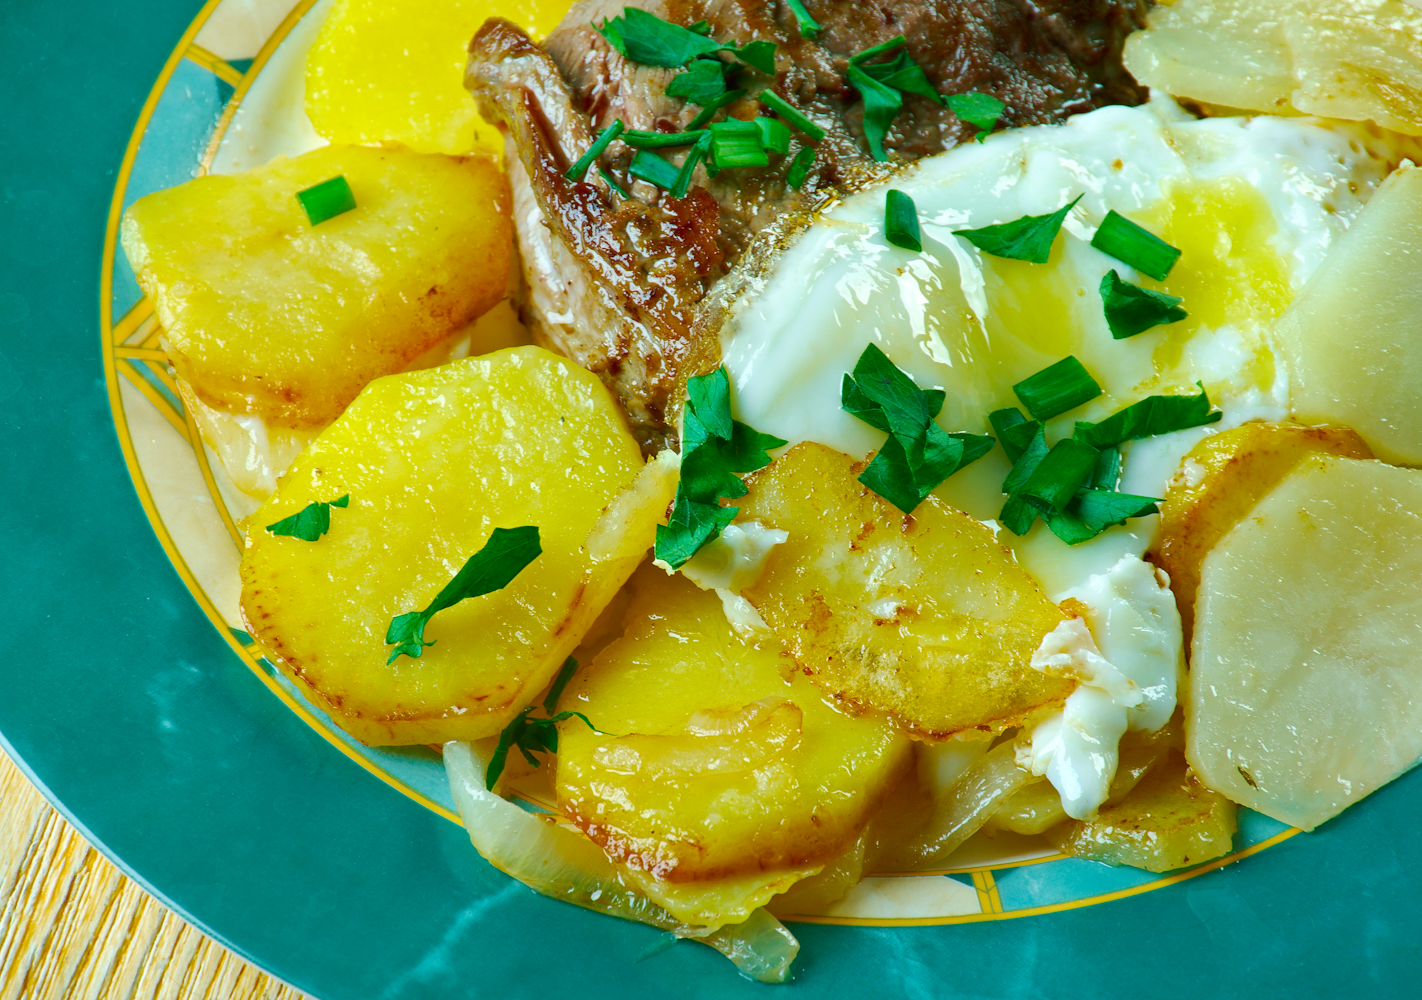 Protein much? Get your fill of meat and eggs with this Portuguese-style steak.